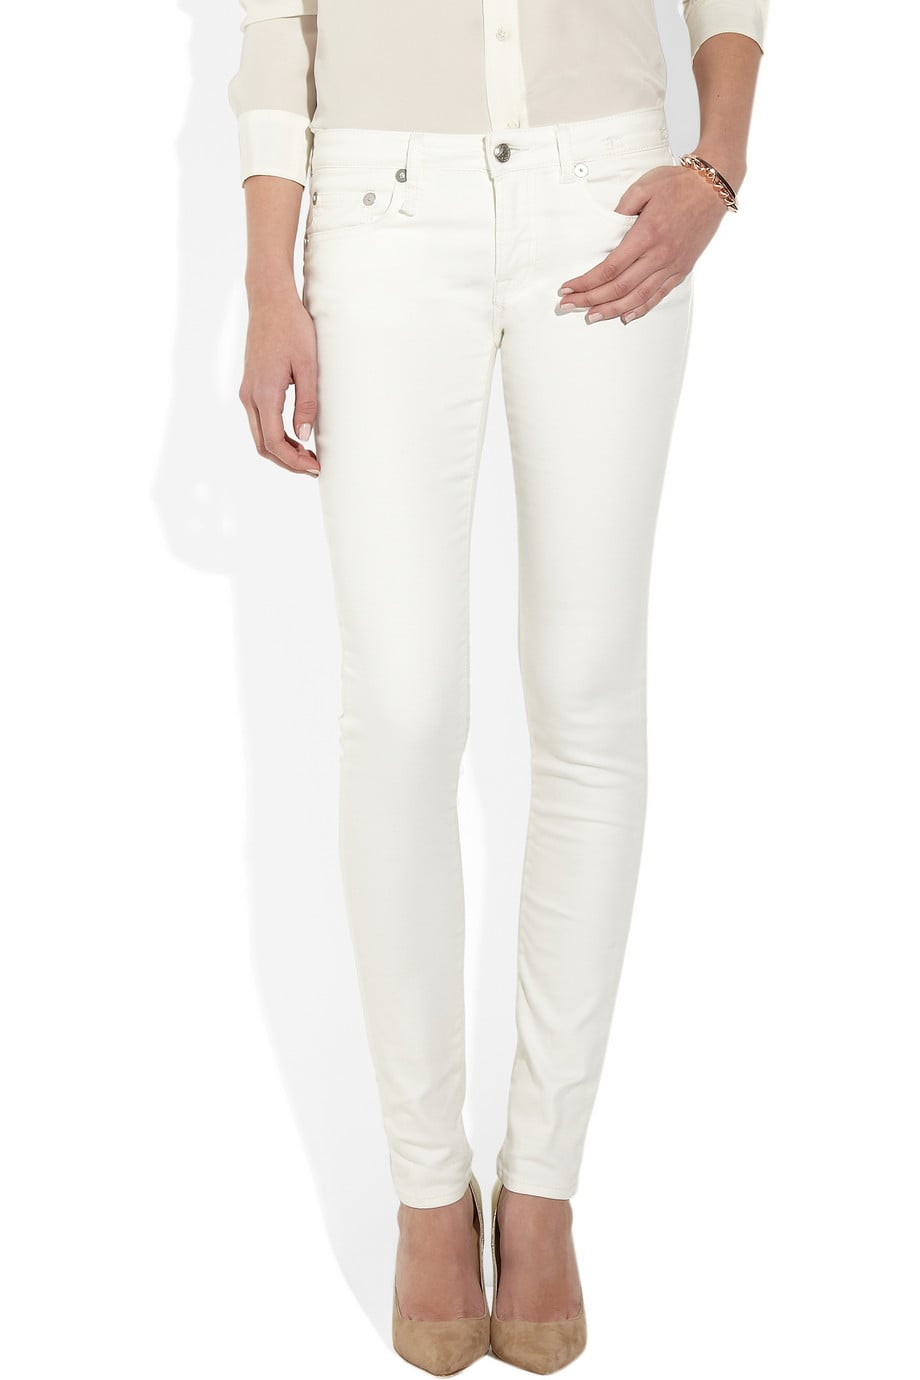 A Pair of White Jeans